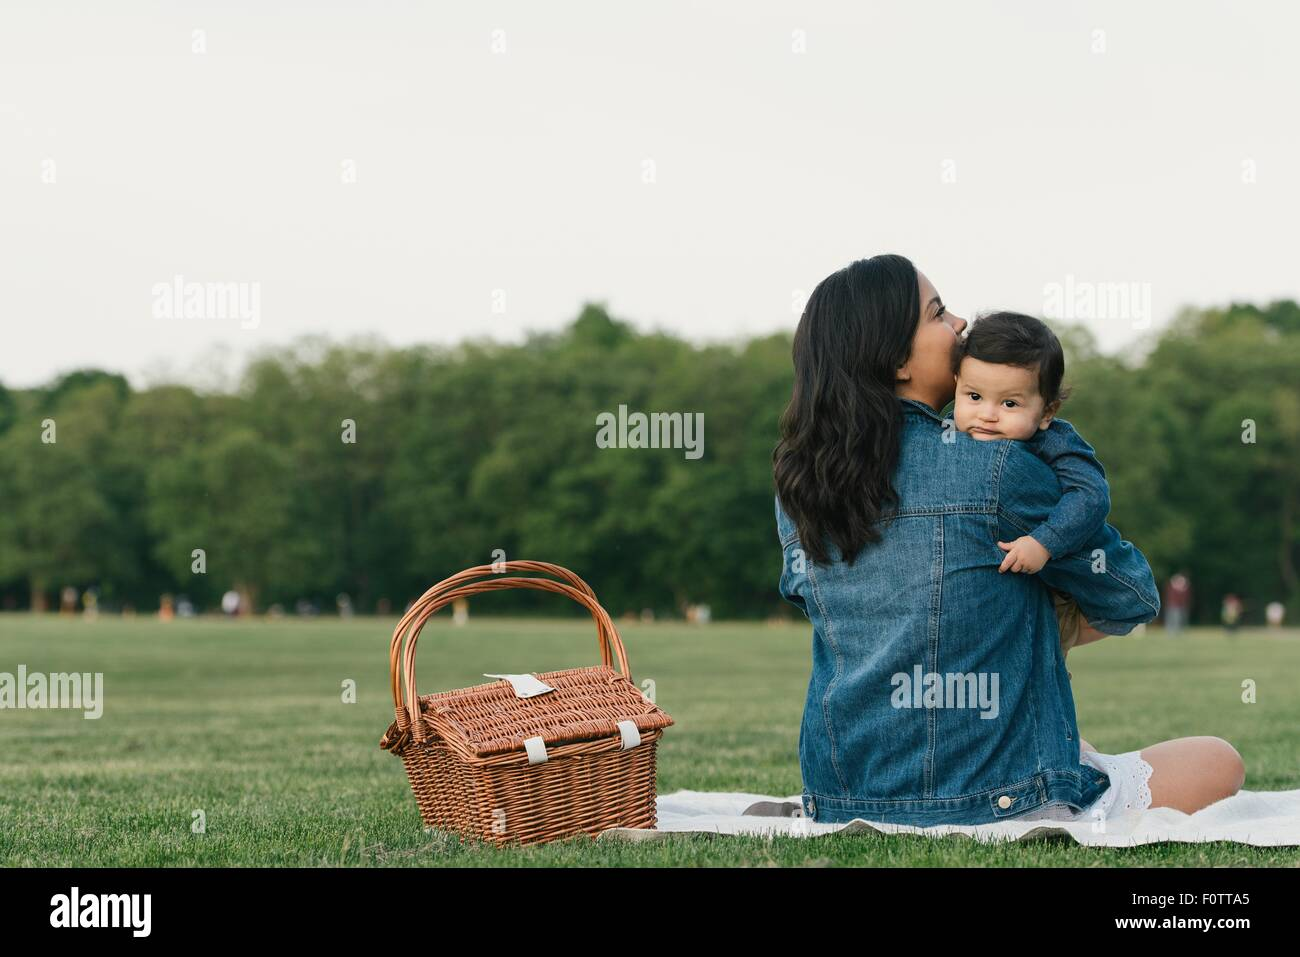 Rear view of mother sitting by picnic basket holding baby boy - Stock Image